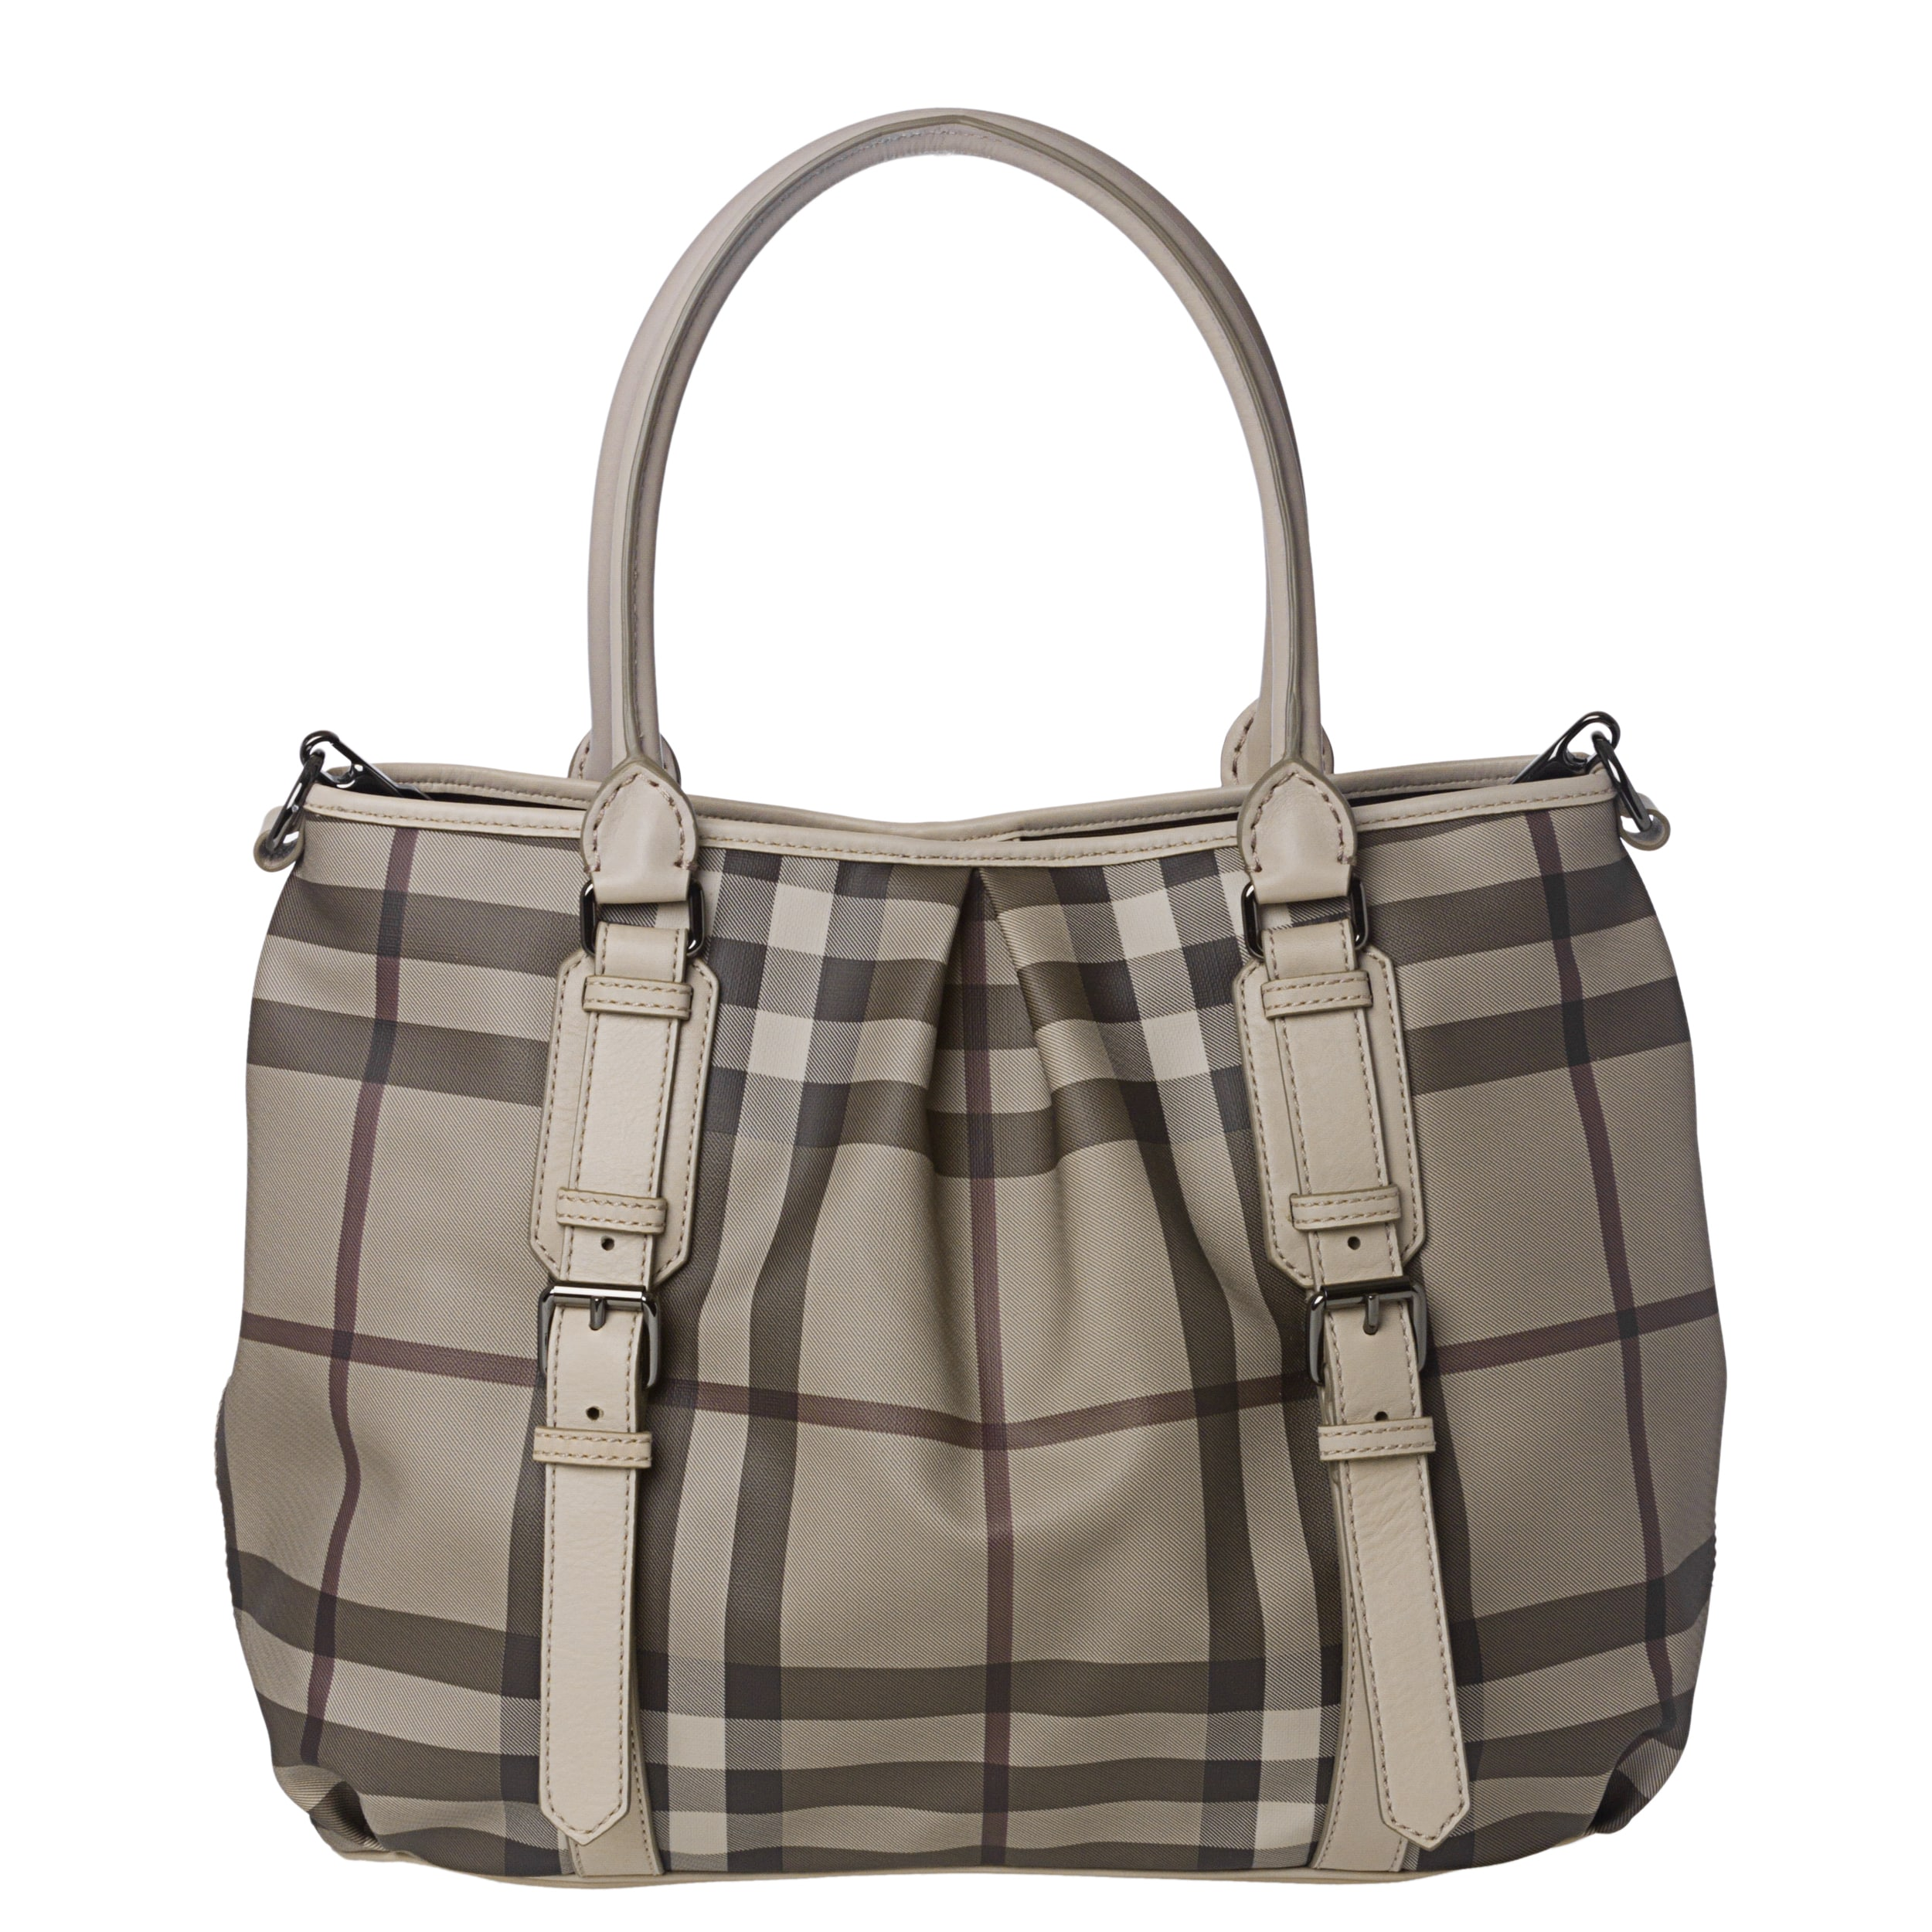 079979ca5199 Shop Burberry Medium Smoked Check Canvas  Leather Tote Bag - Ships ...